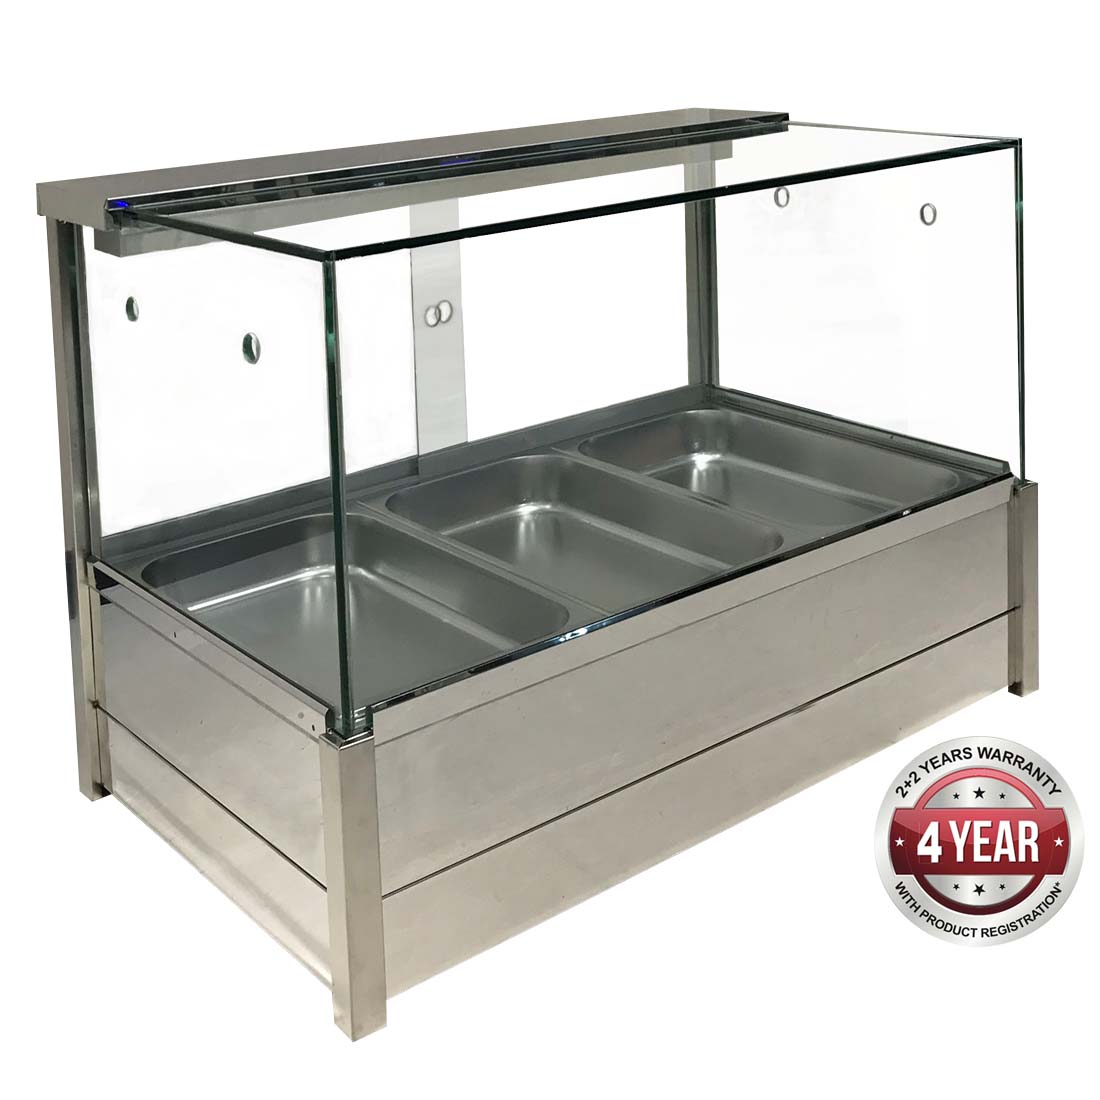 BM11SD Heated Wet 6 x ½ Pan Bain Marie Square Countertop Display